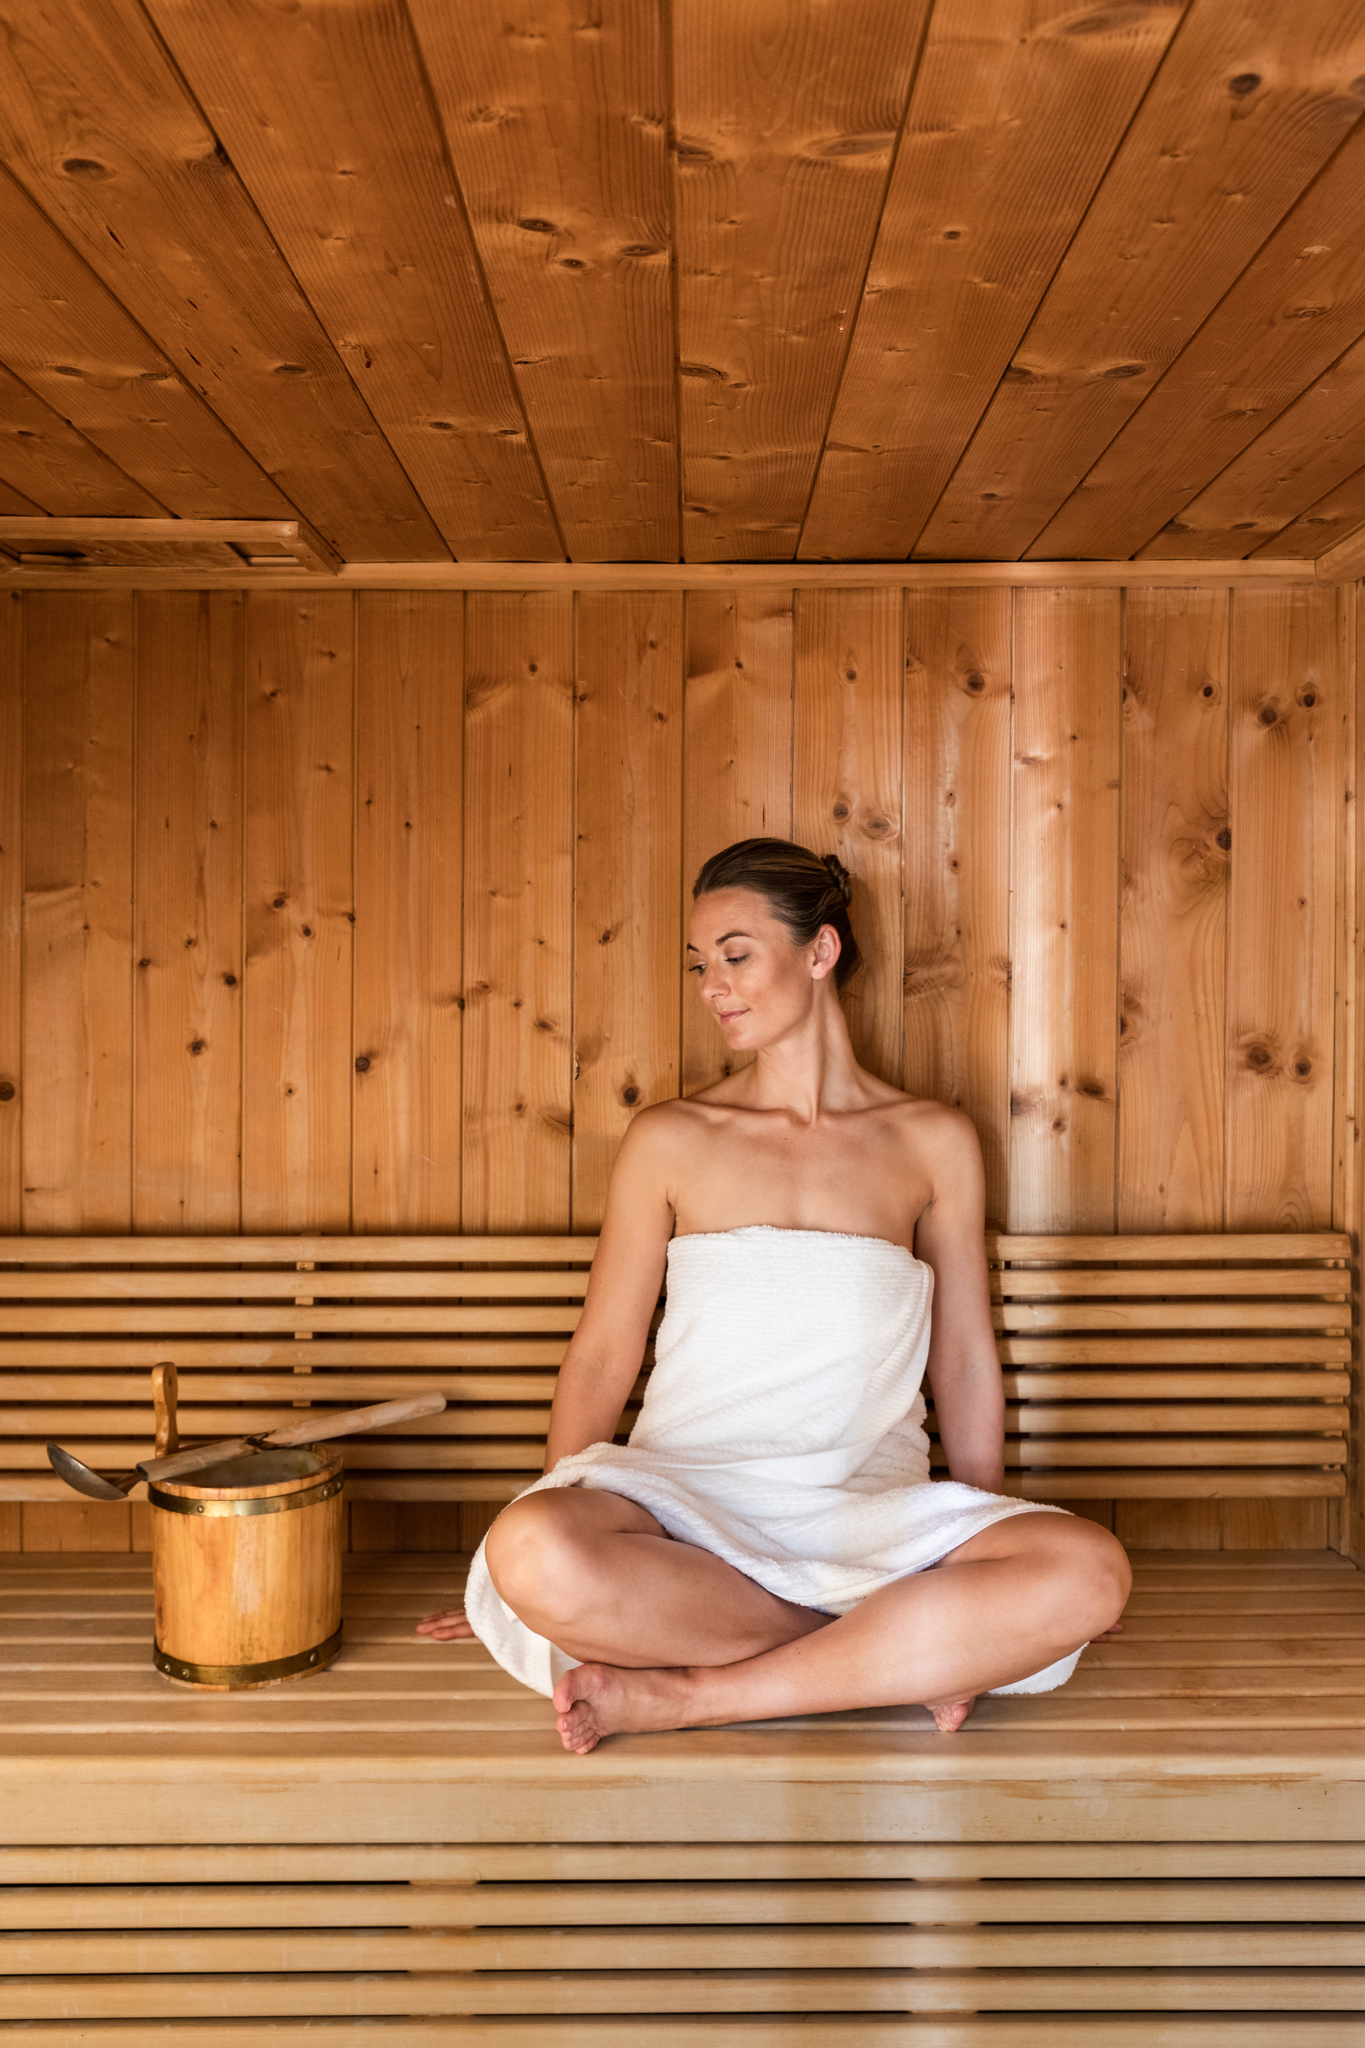 Girl relaxing in the sauna at Delaire Graff Spa